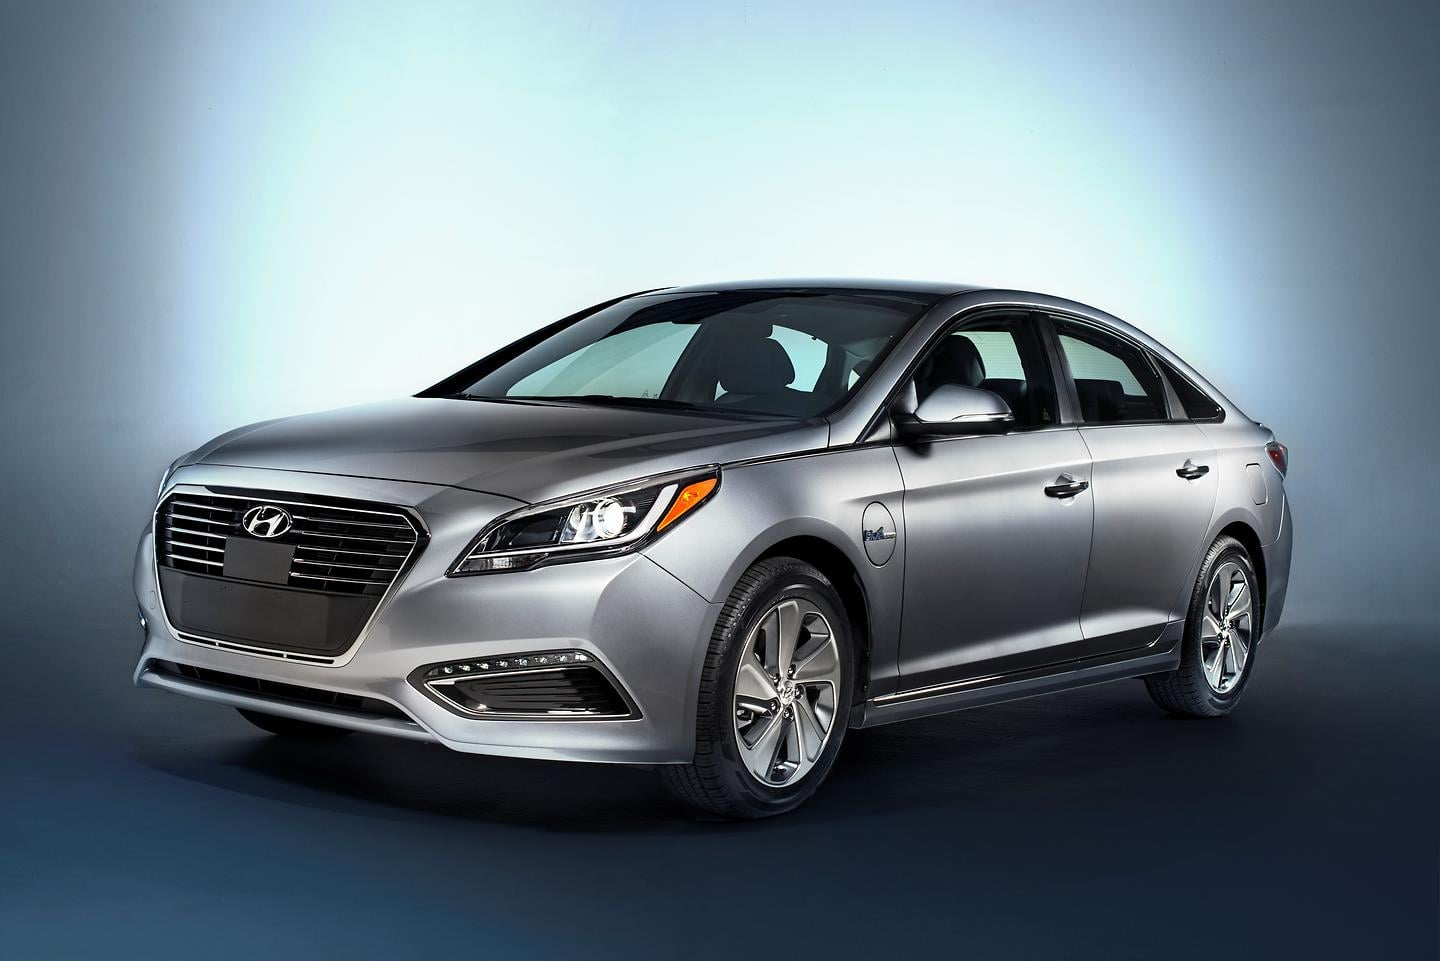 Hyundai Sonata Named 2016 Green Car of the Year Finalist